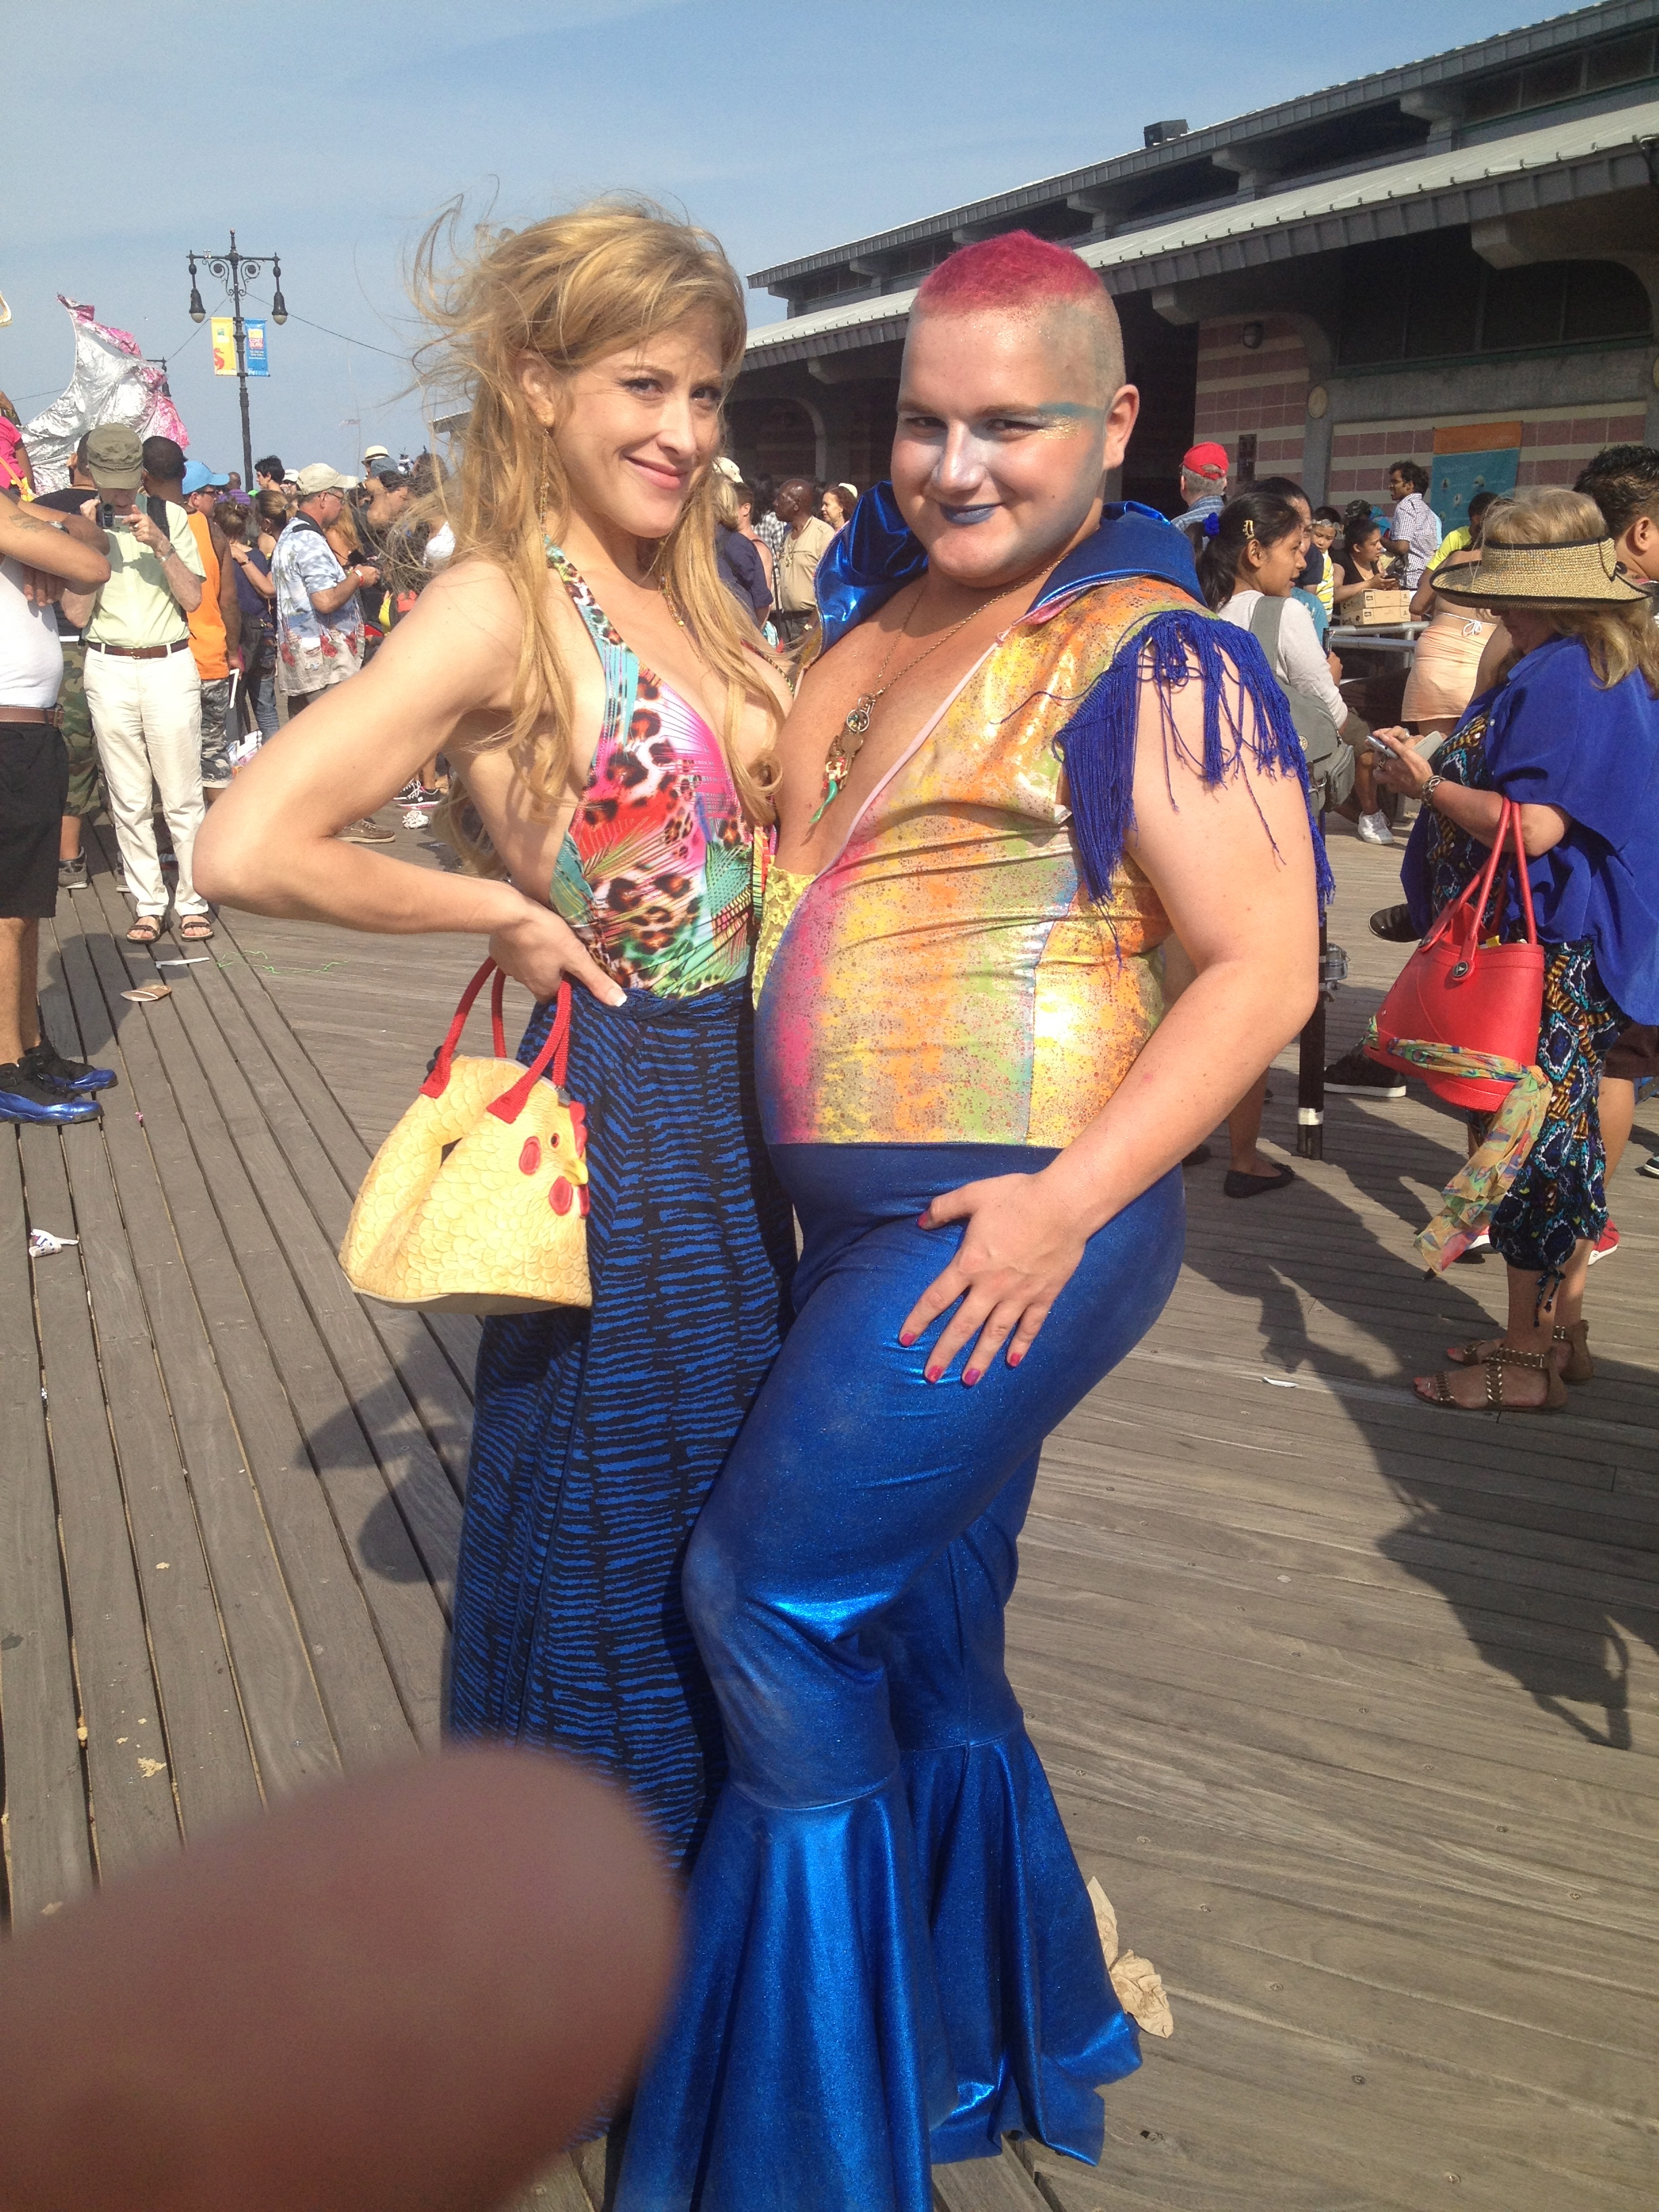 How humorous. I bumped into another Mermaid who happened to be wearing the same outfit.